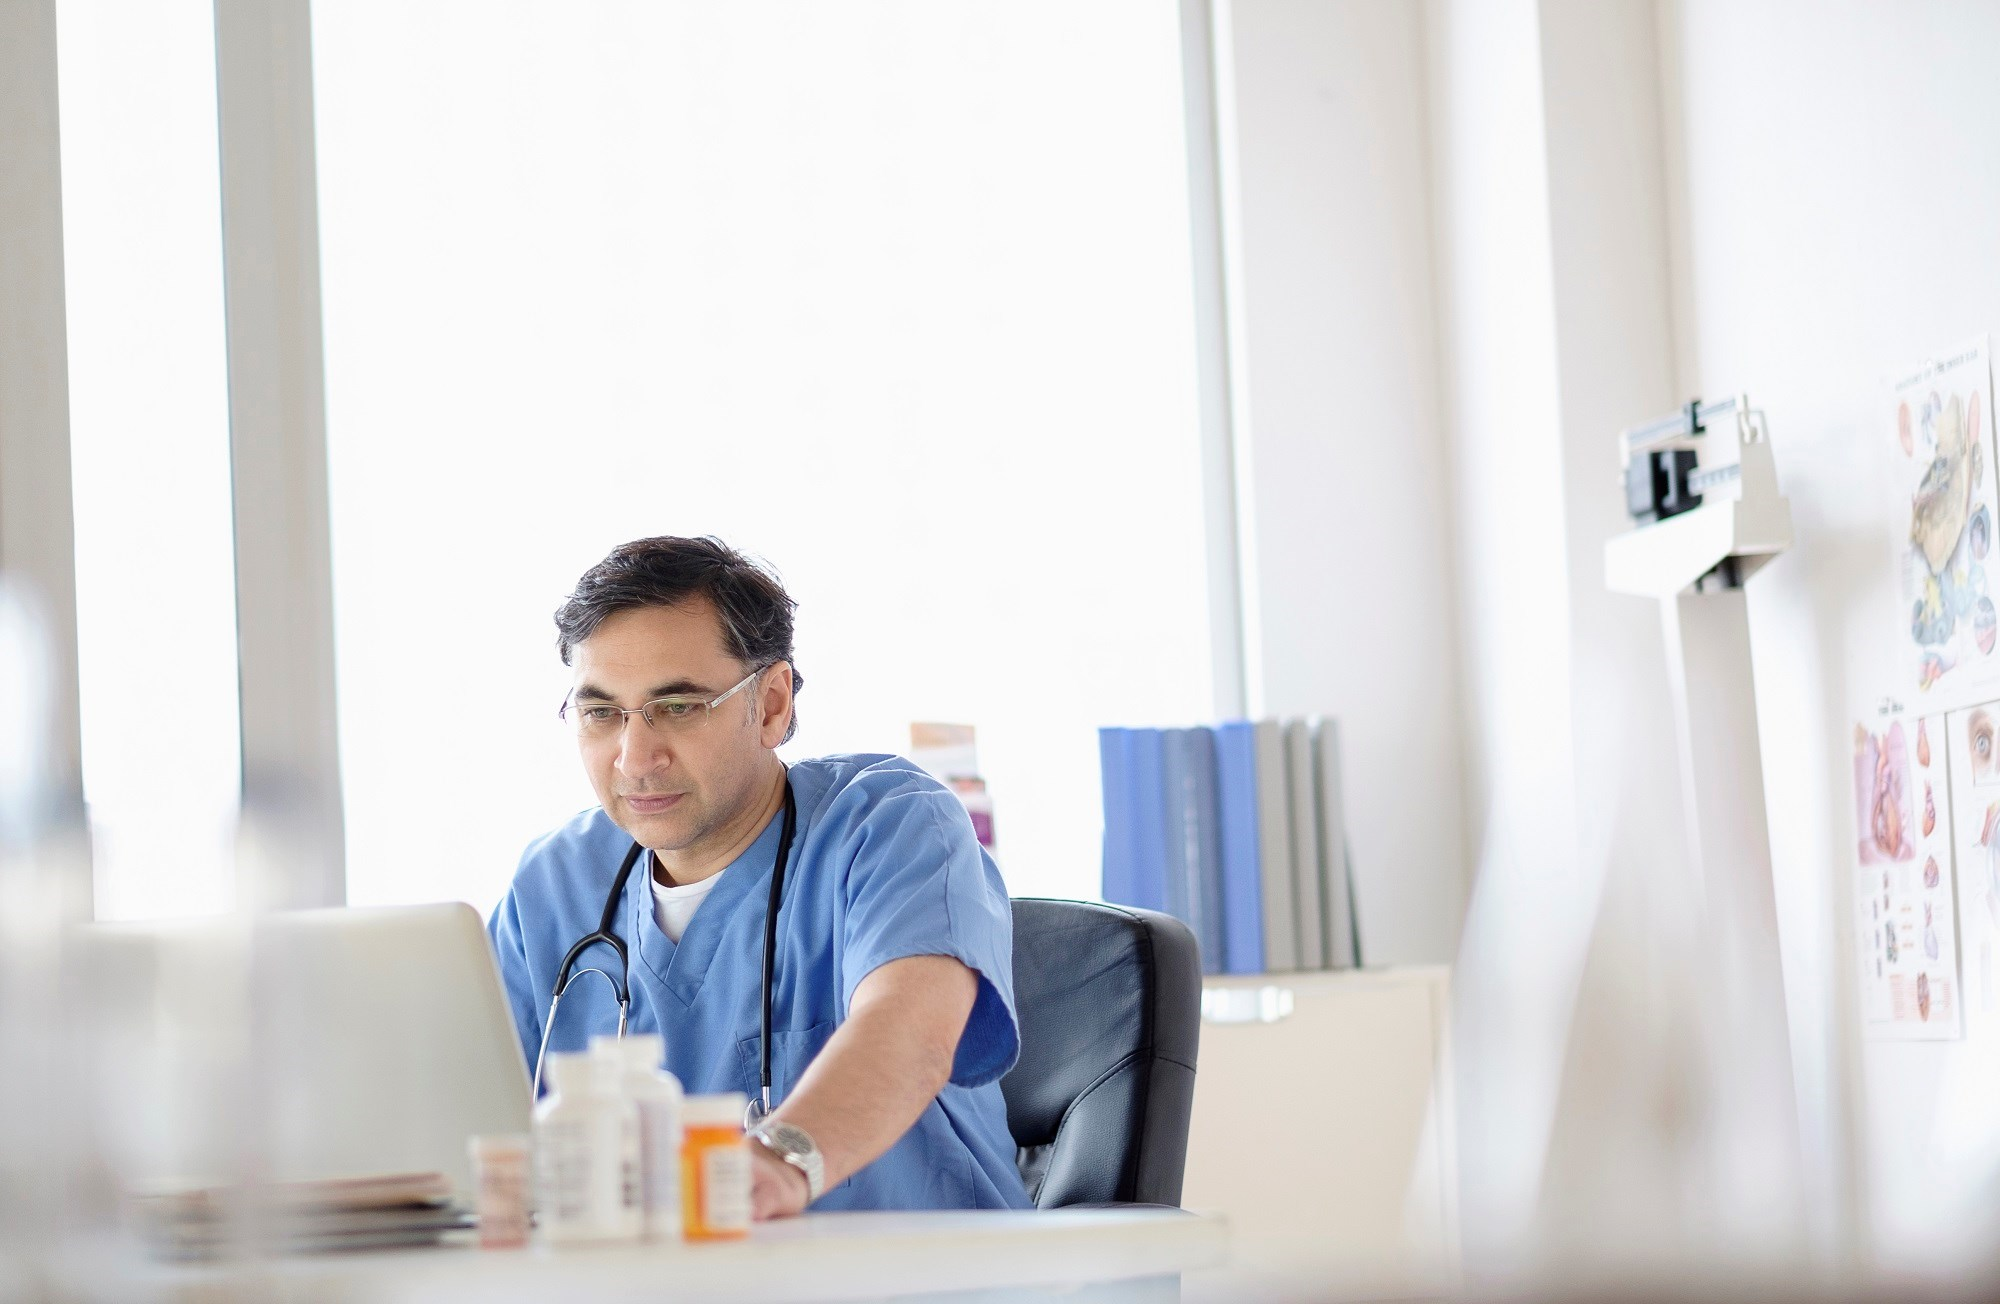 Implementing EMRs Affects Time Spent With Patients in Clinic